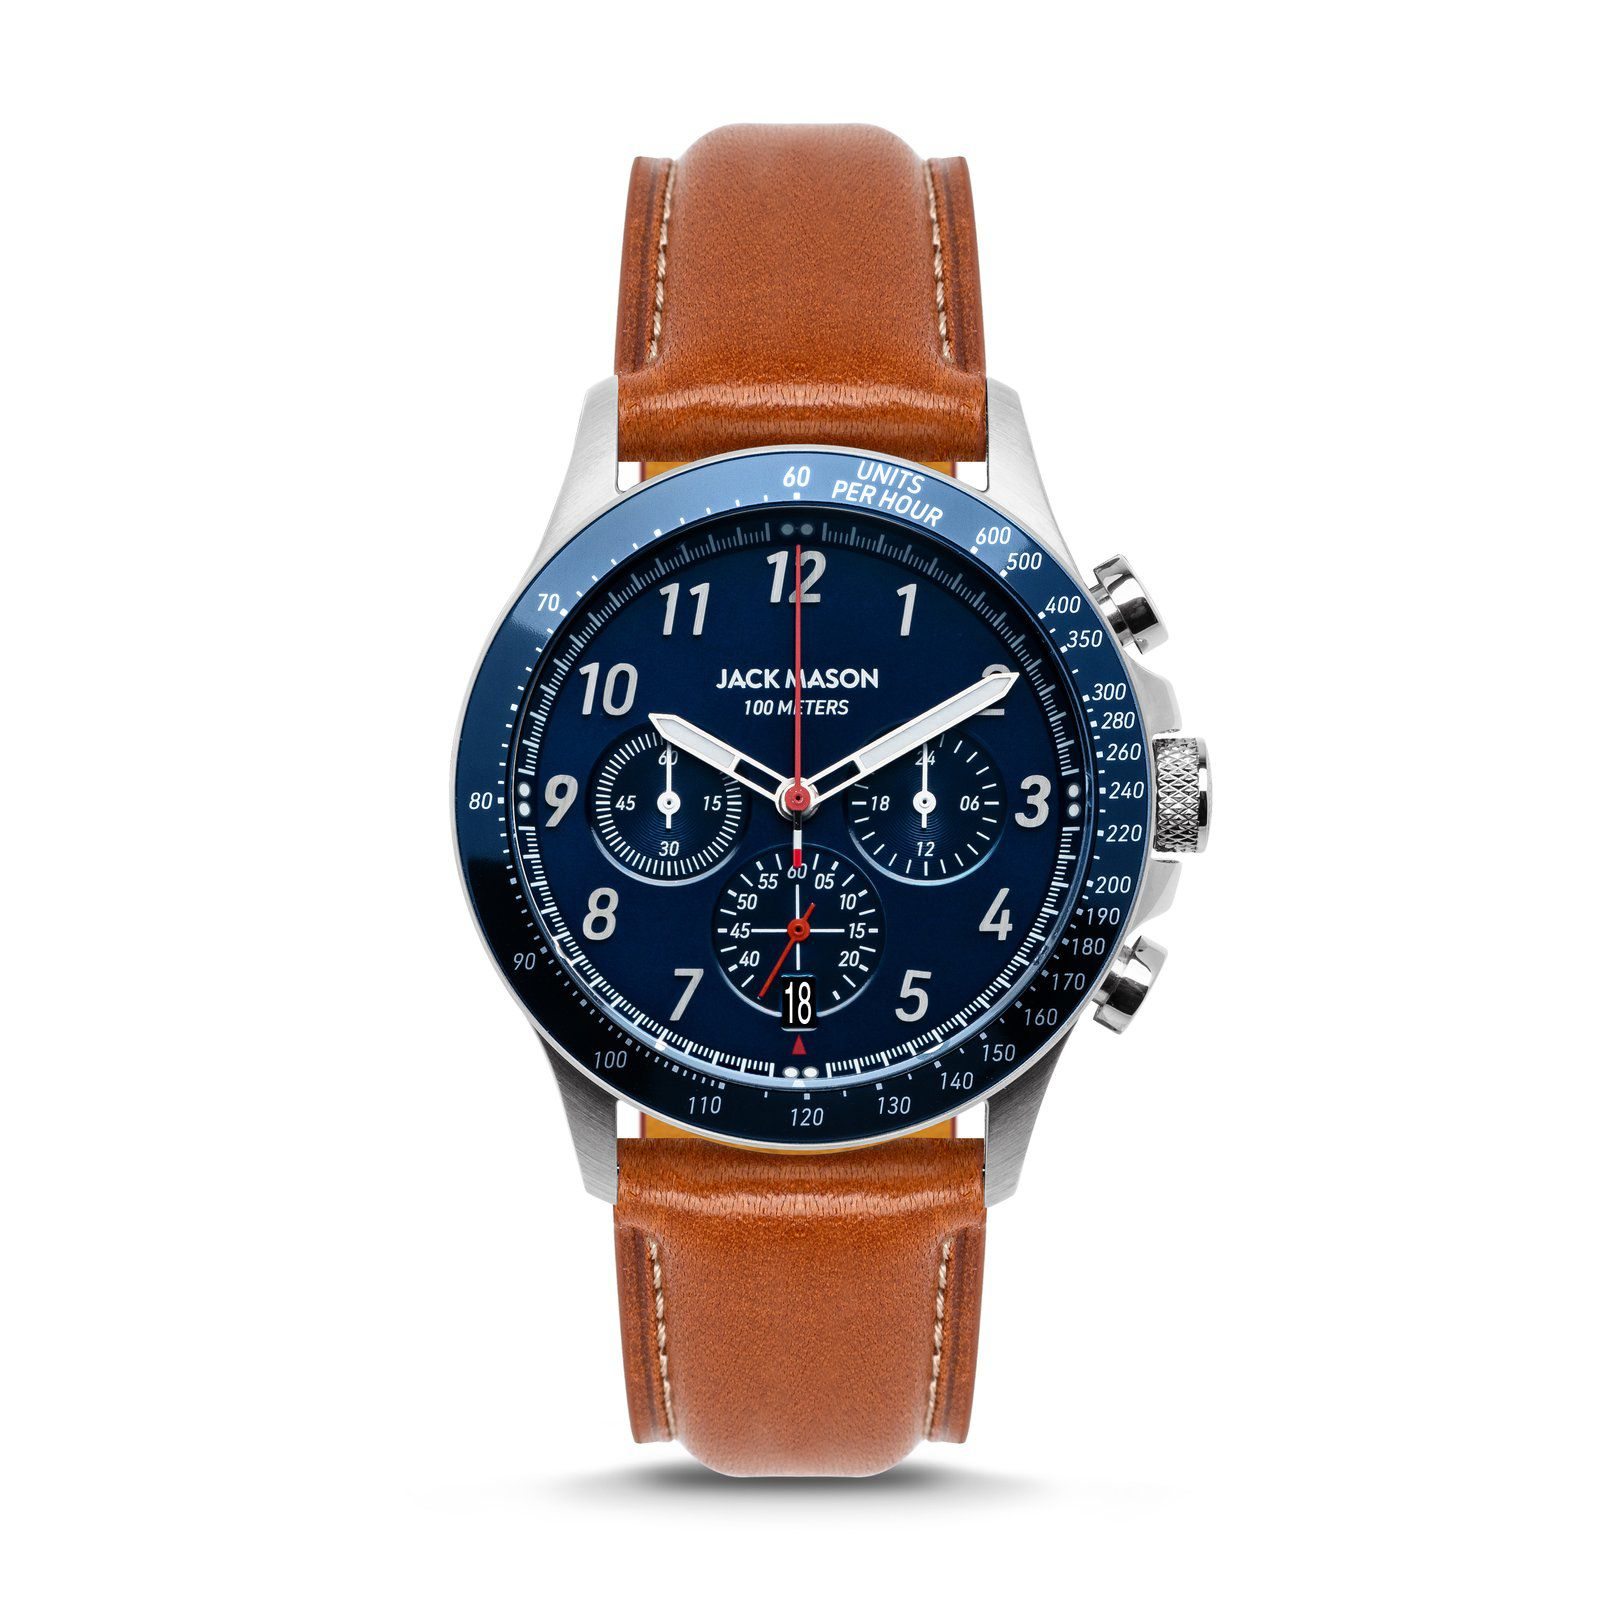 The Camber Chronograph from Jack Mason watches.